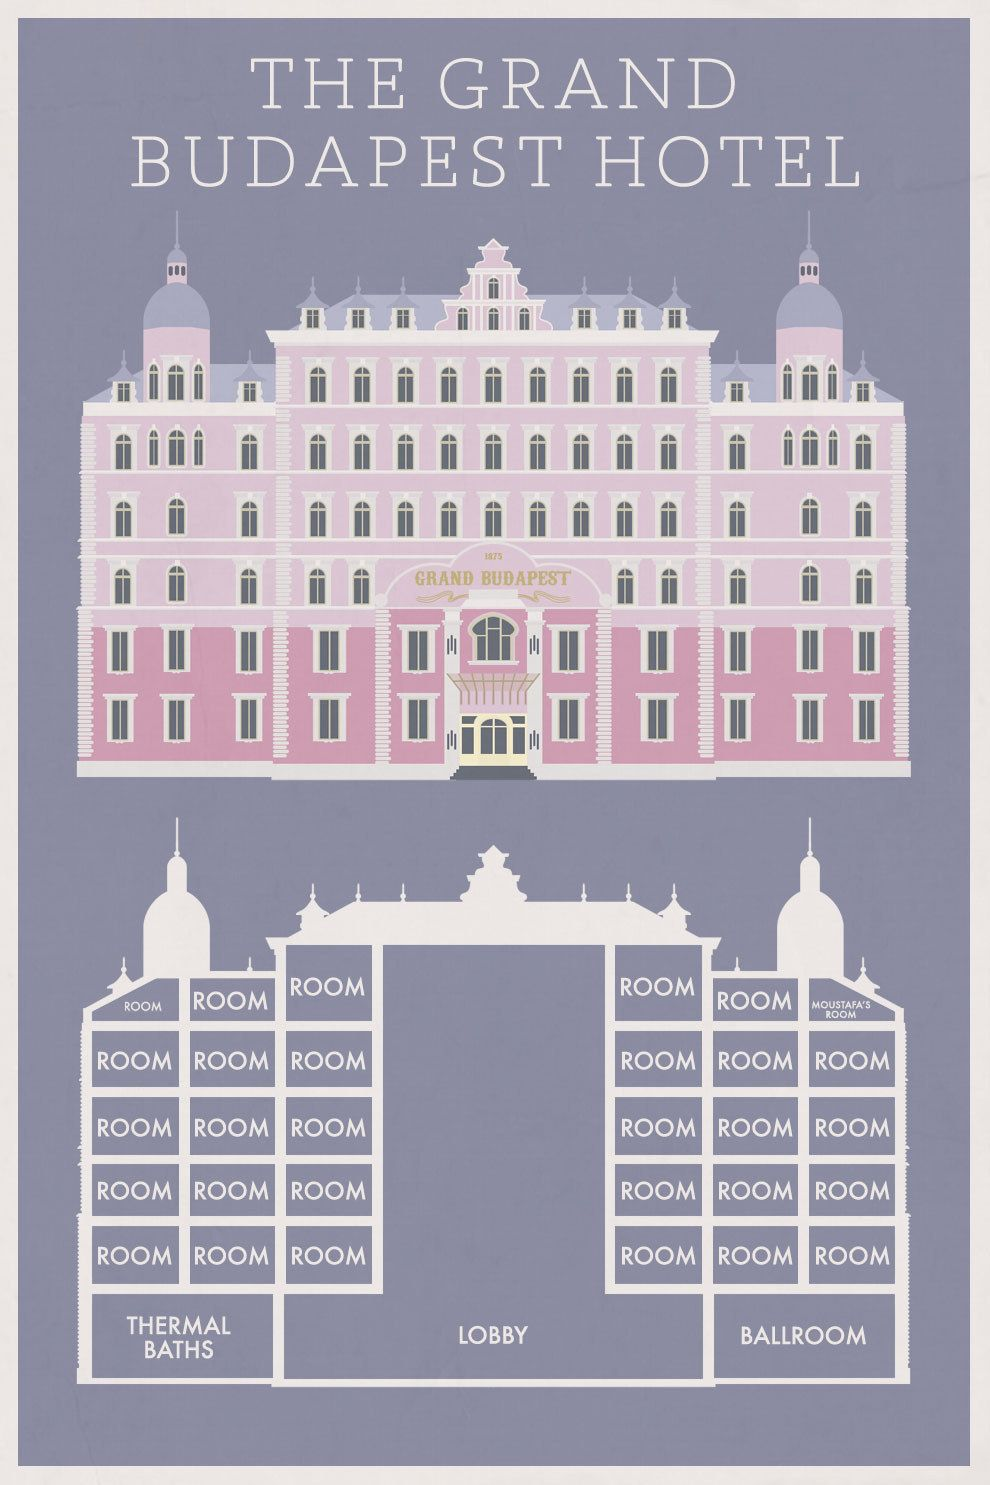 mini st posters of wes anderson houses grand budapest hotel  mini st posters of wes anderson houses grand budapest hotel